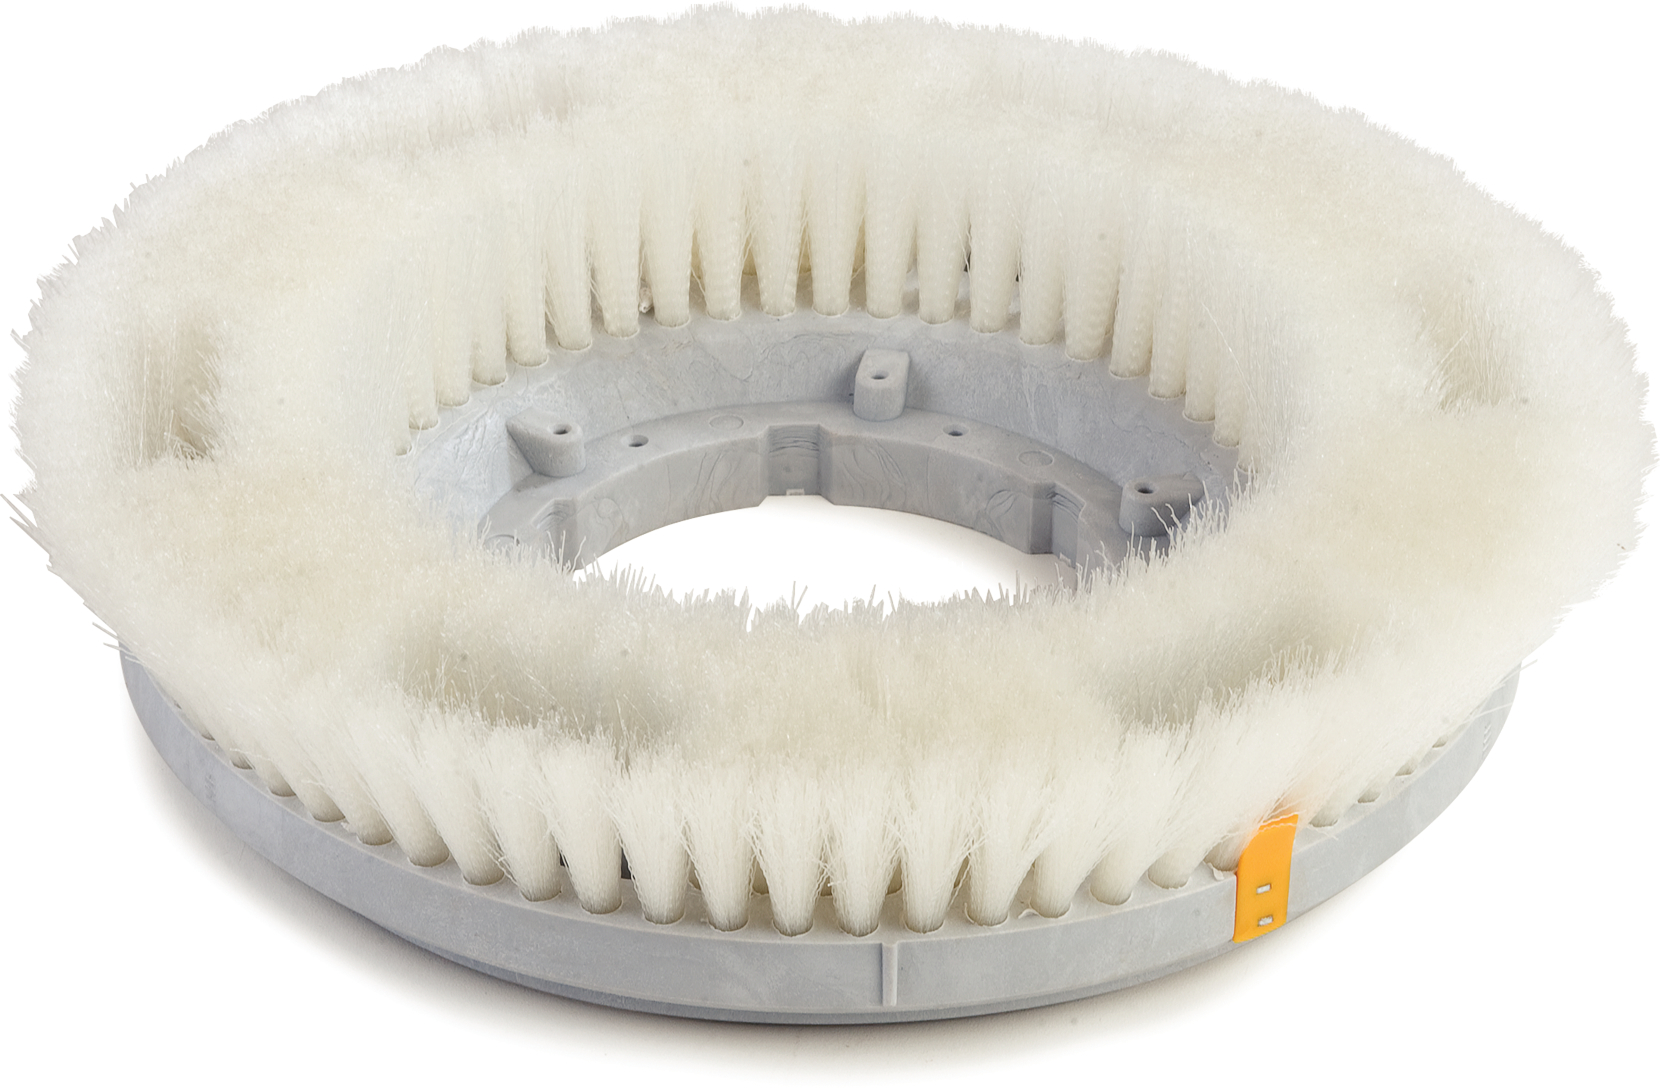 Colortech Nylon General Scrub Rotary Brush 11 - White